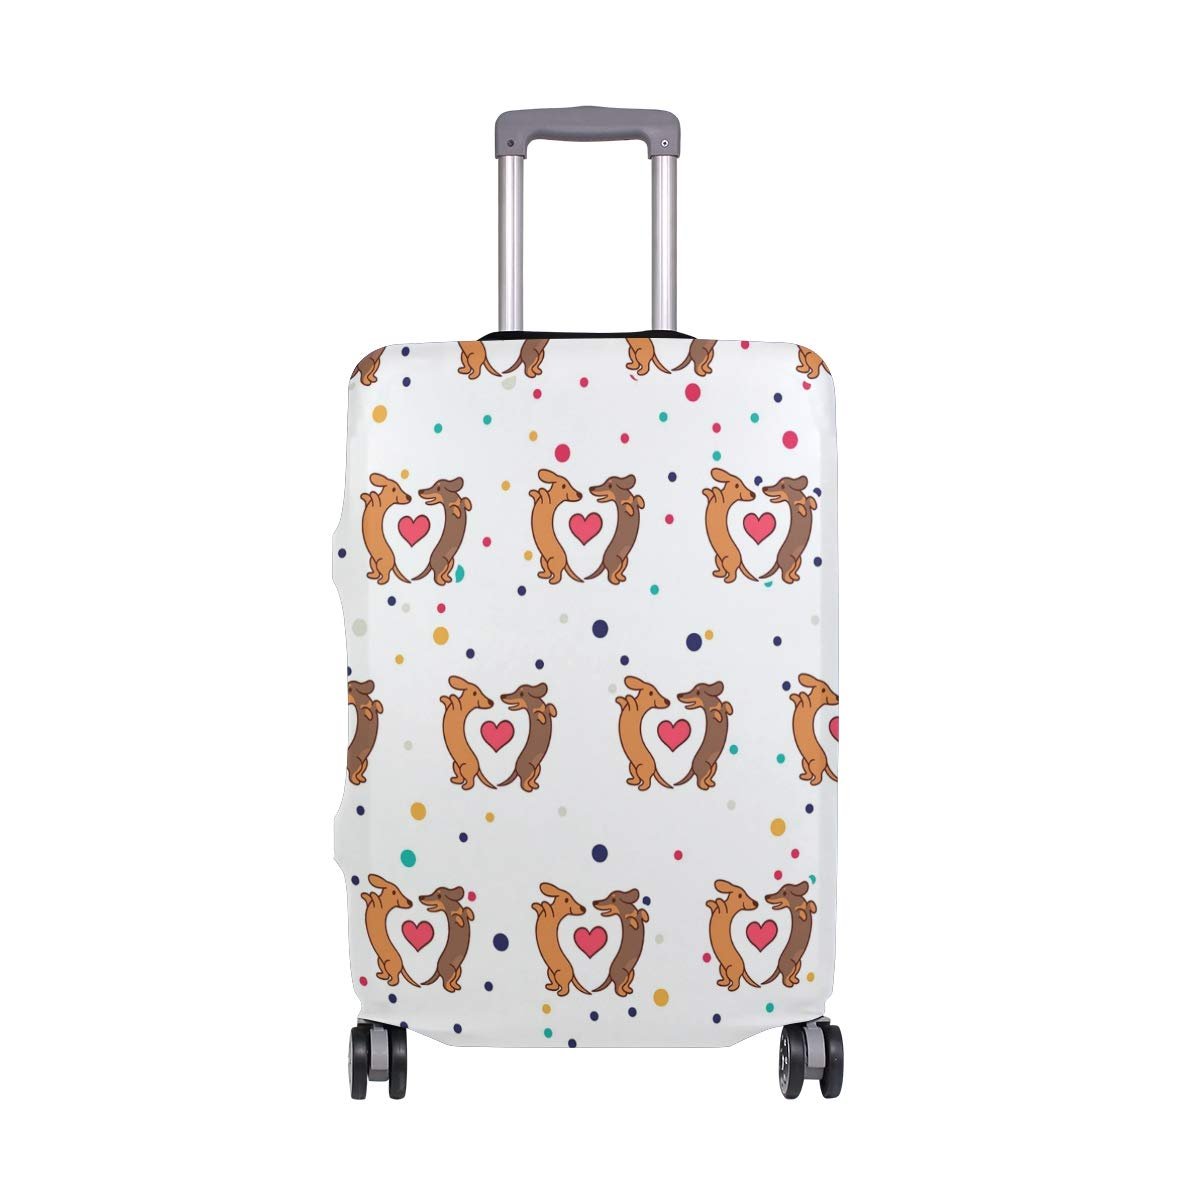 Cute Dachshunds Pets Love Travel Luggage Cover - Suitcase Protector HLive Spandex Dust Proof Covers with Zipper, Fits 18-32 inch